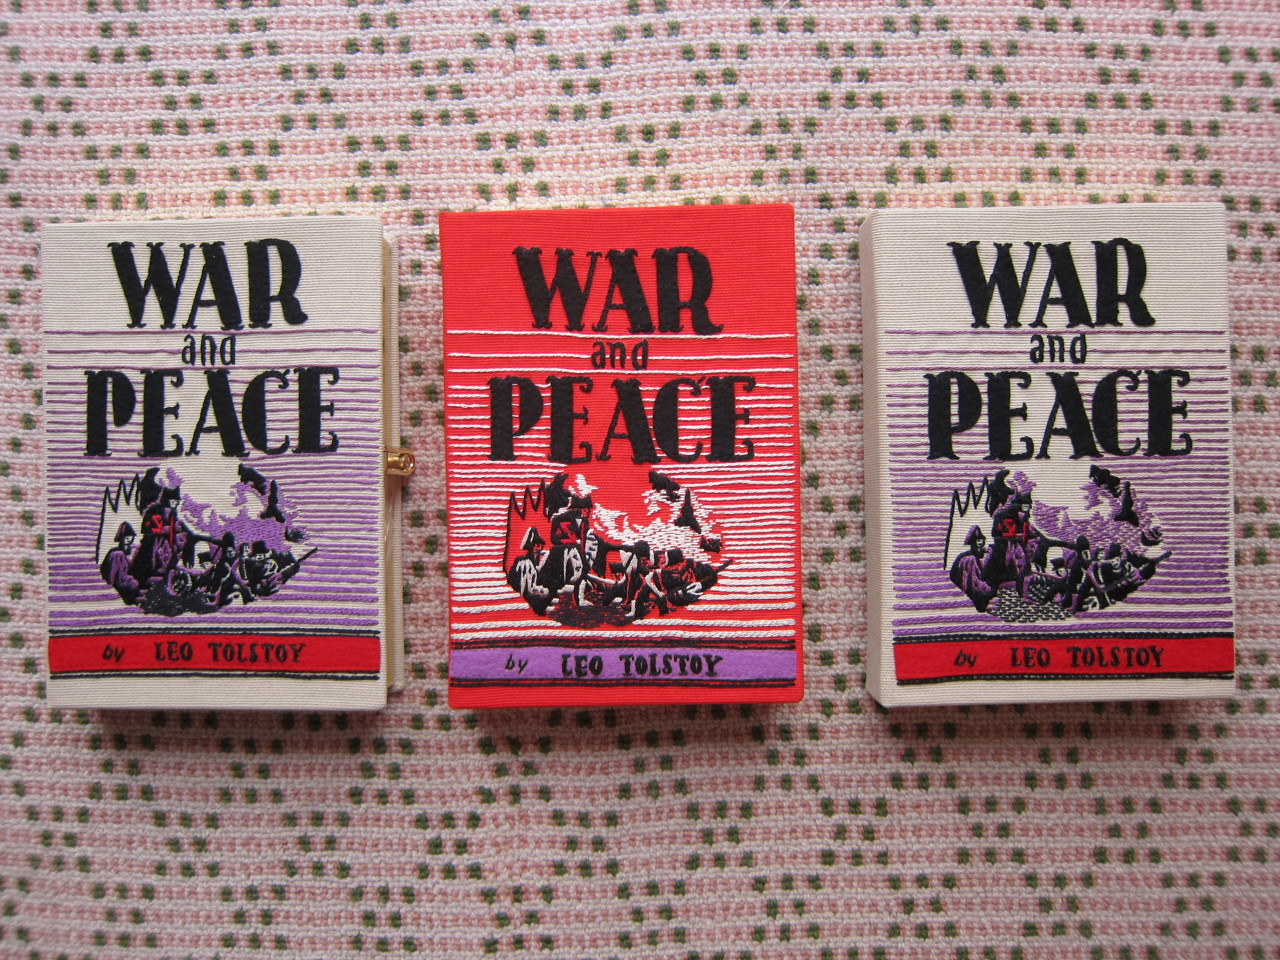 War and Peace book-clutch by Olympia Le-Tan.